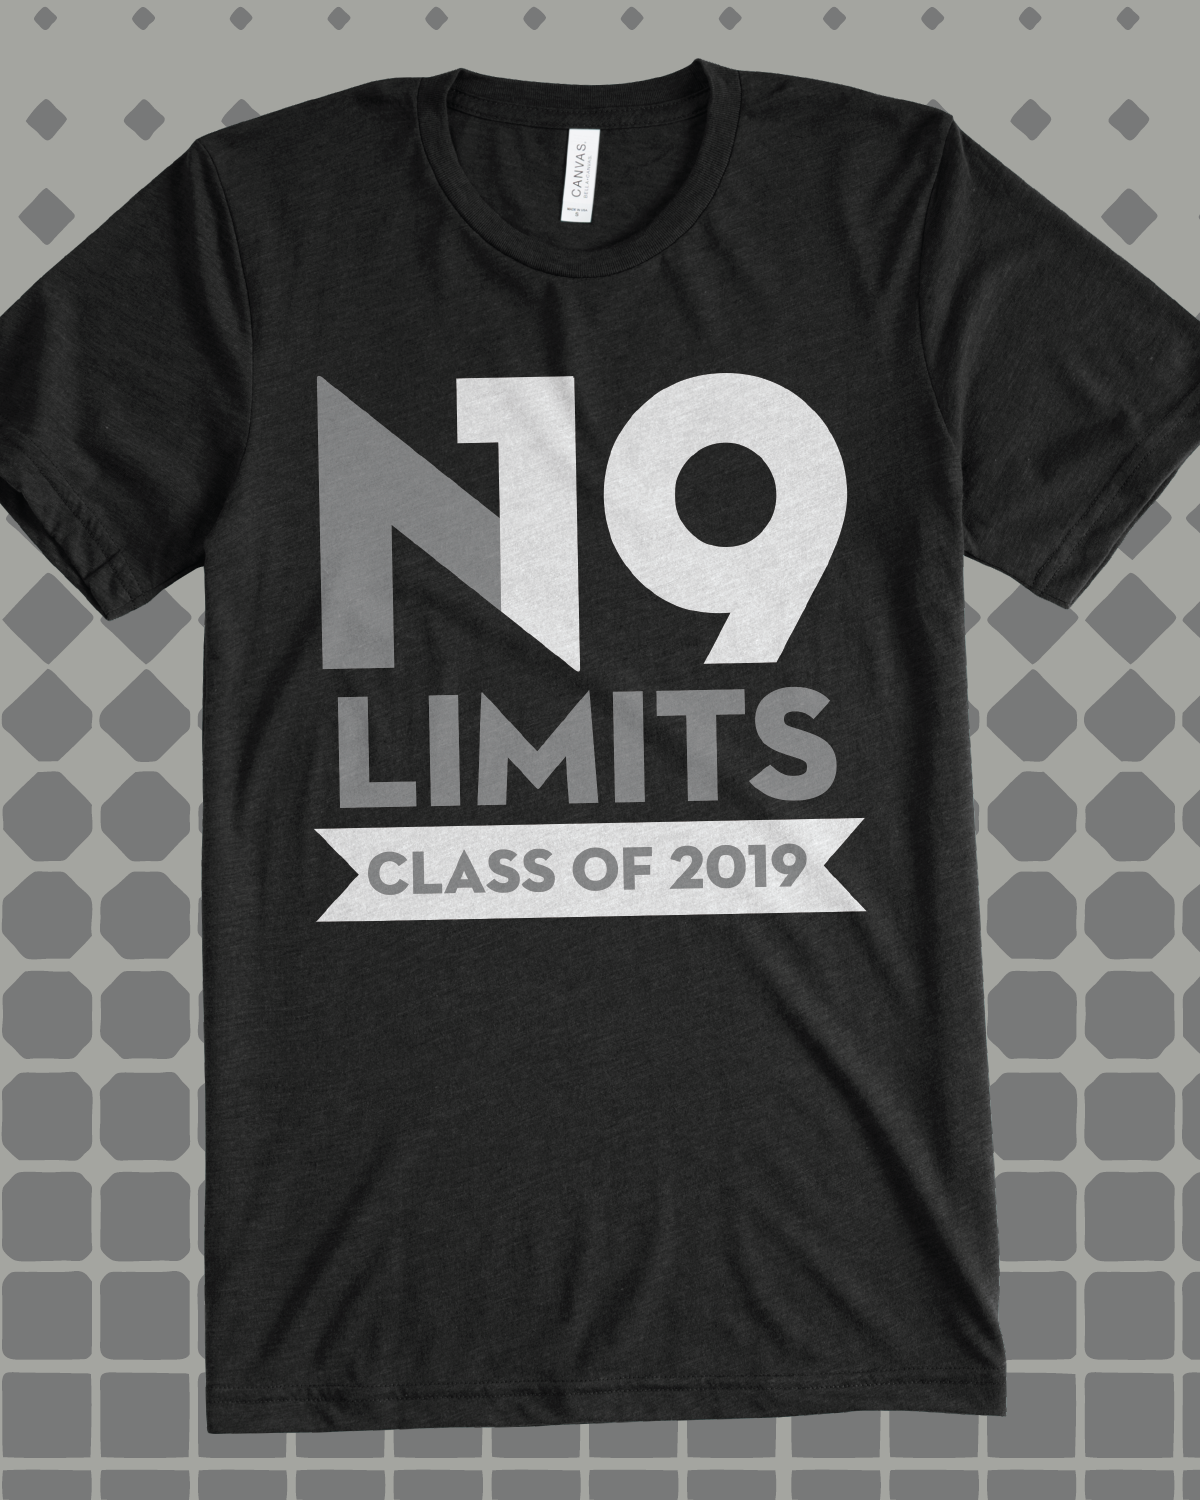 N19 Limits Class of 2019 class shirt - design idea for custom shirt ...